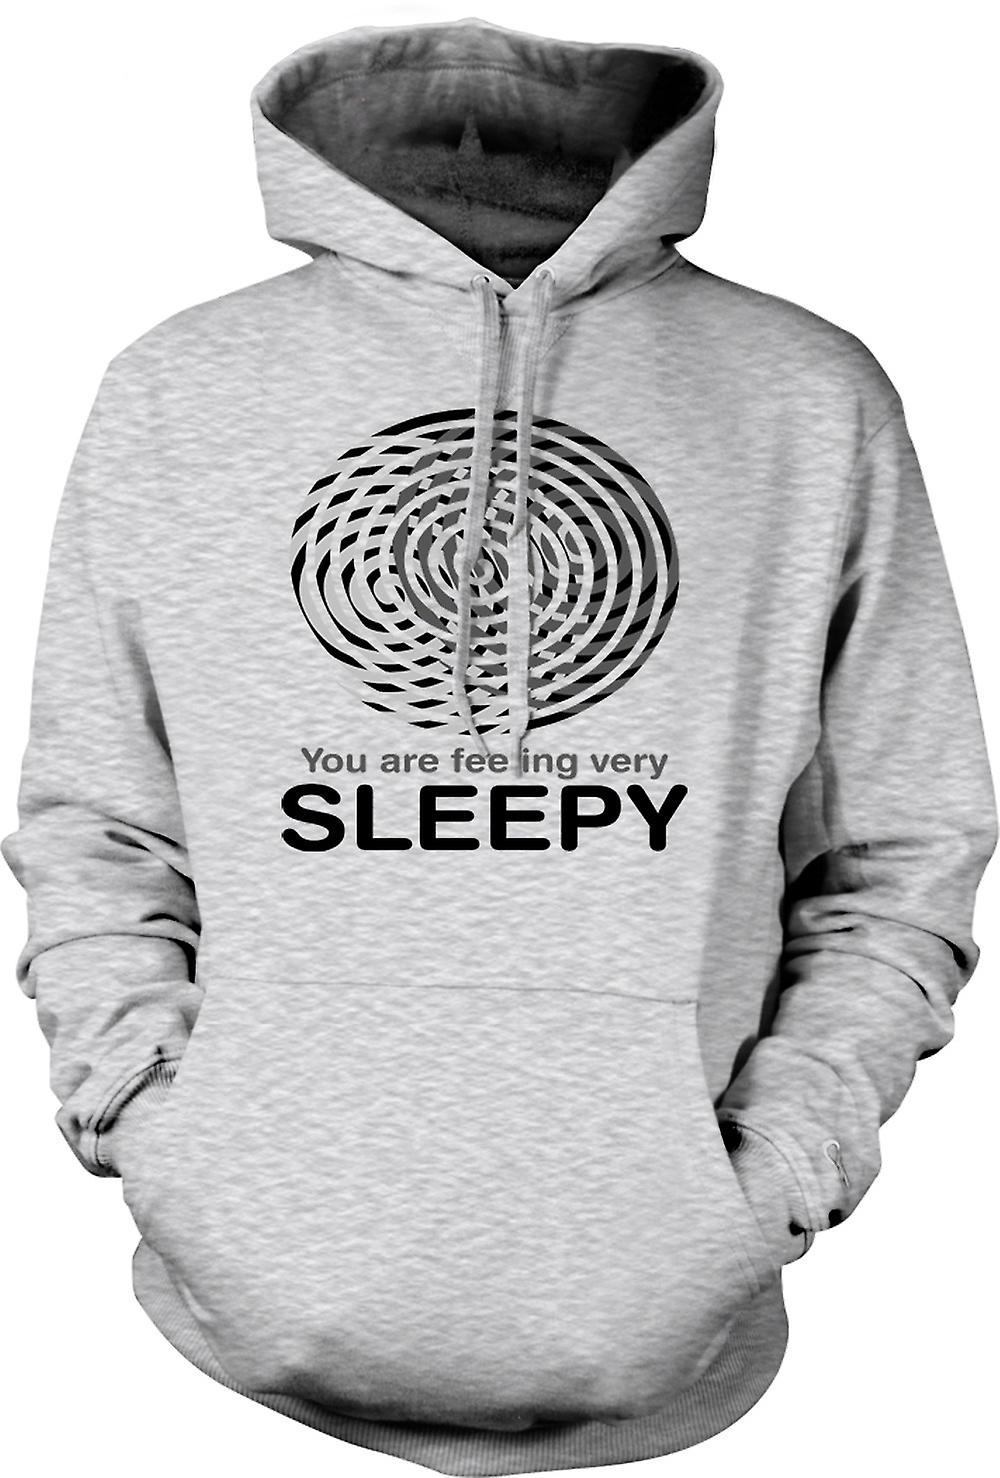 Mens Hoodie - You Are Feeling Very Sleepy - Funny